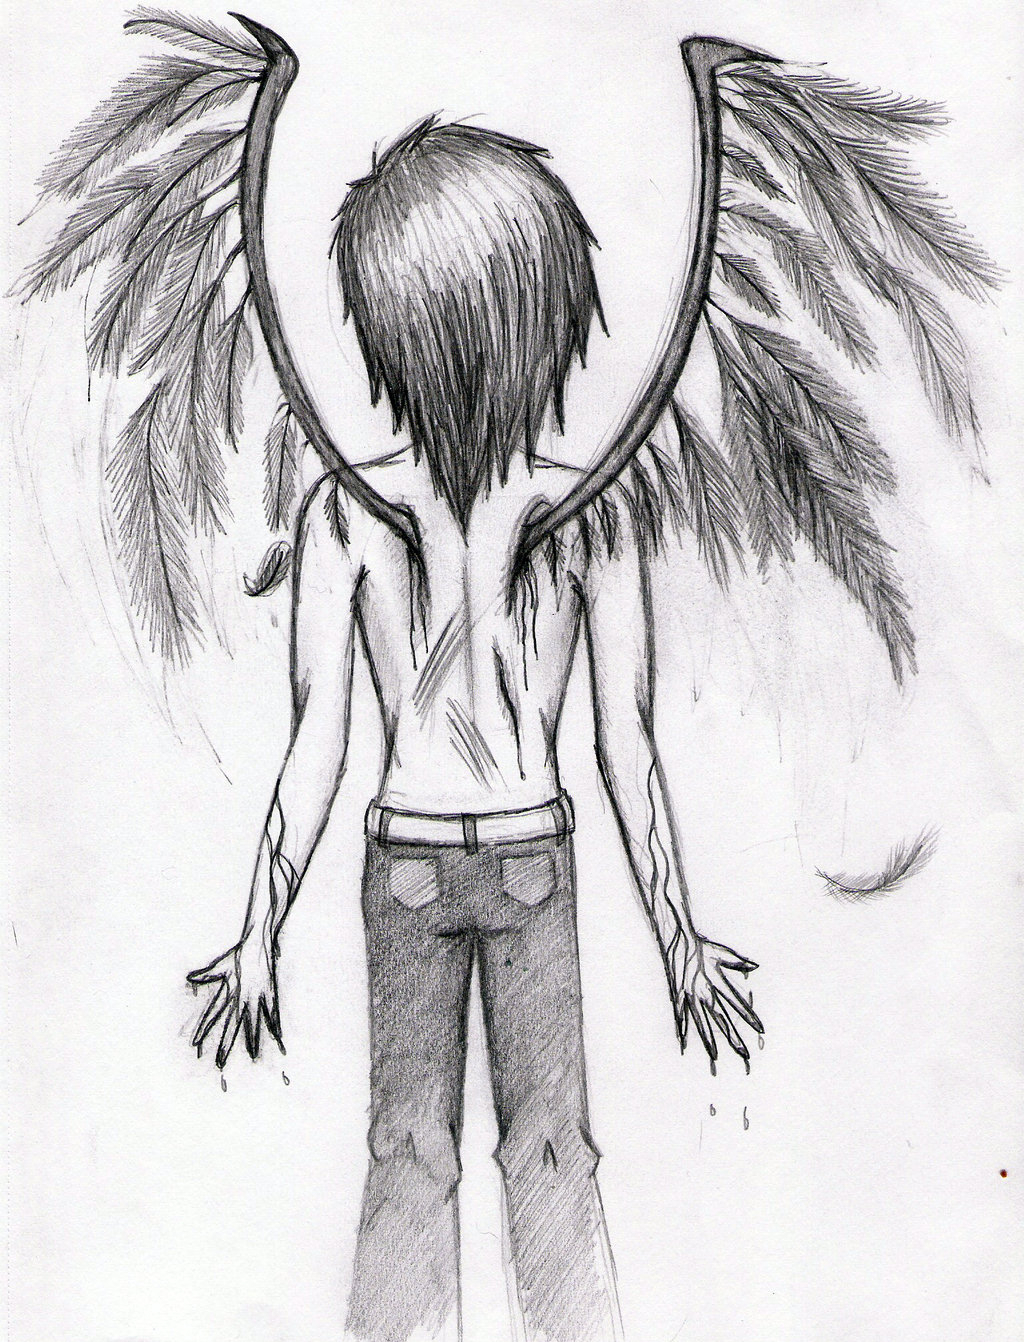 1024x1342 Man With Wings Drawing Cut Out The Middle Man Broken Wings By Izzy